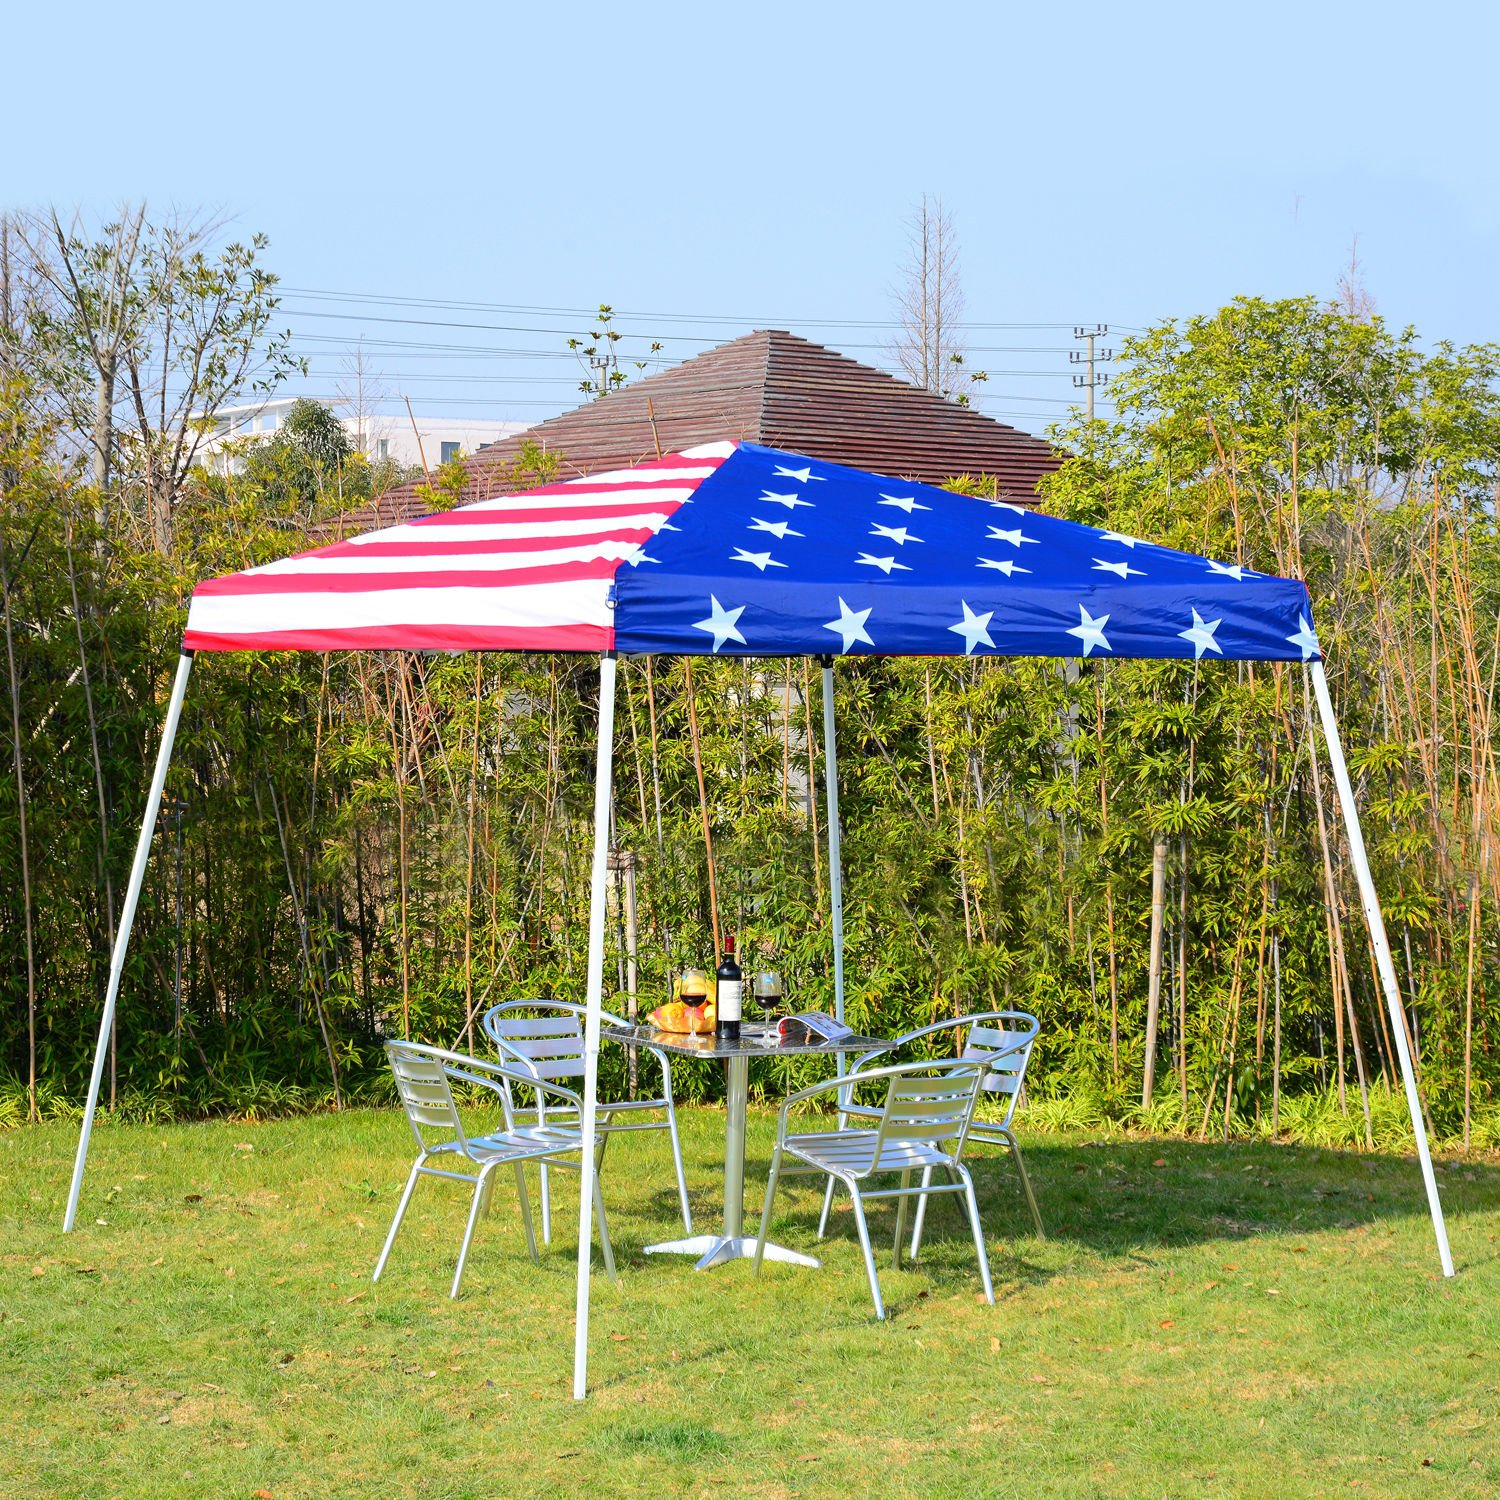 Outsunny 10 x 10 Slant Leg Pop-Up Canopy Shelter Party Tent American Flag